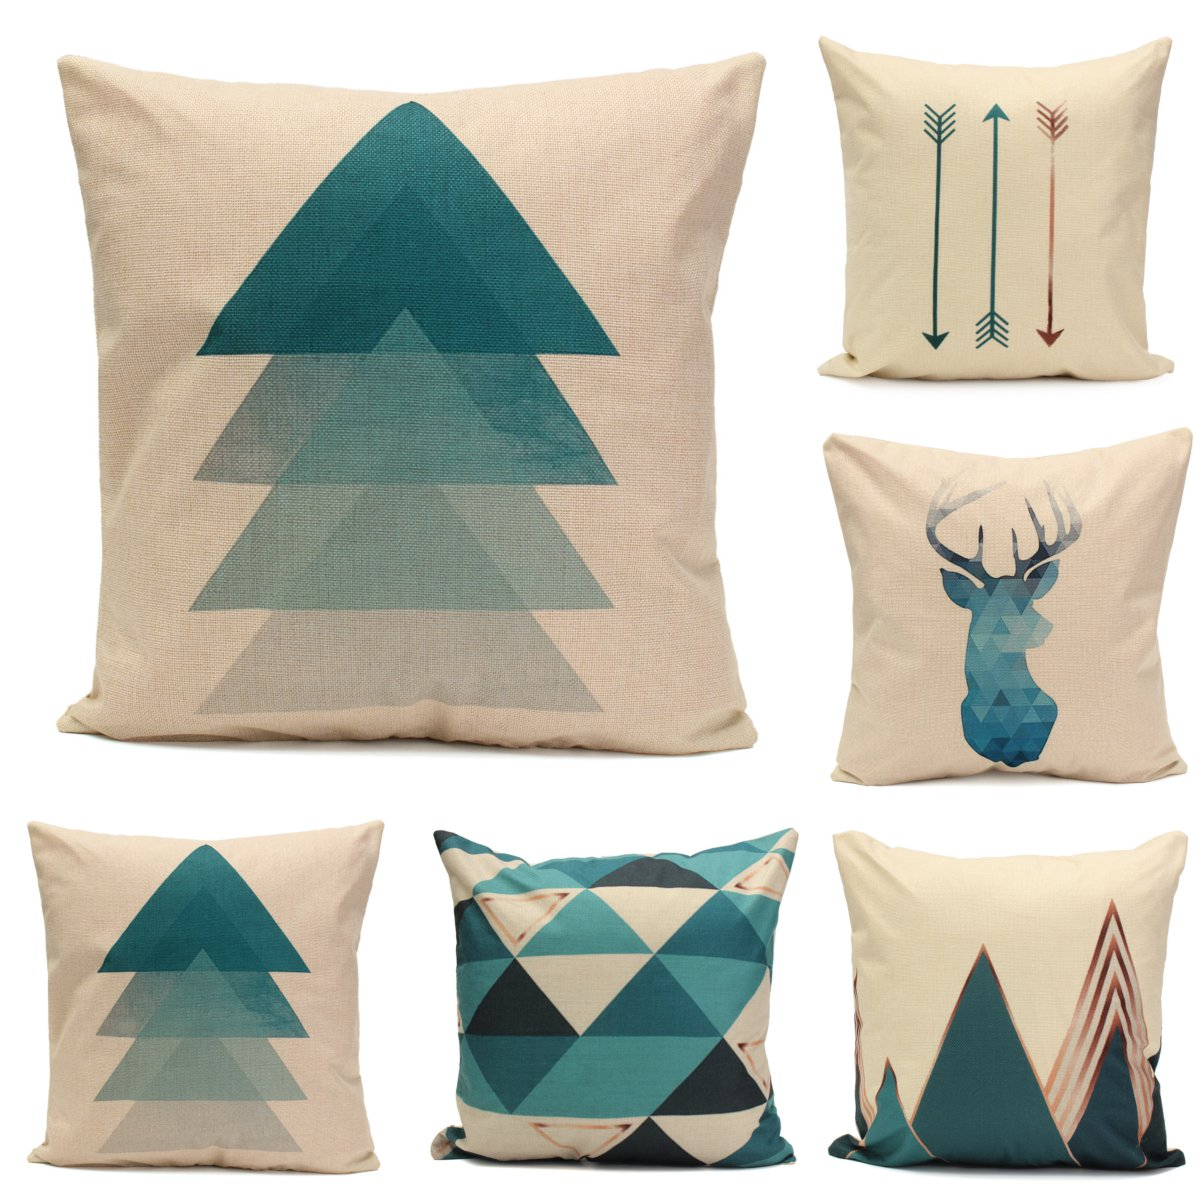 meigar blue deer simple style couch cushion pillow covers 18x18 square zippered cotton linen standard decorative